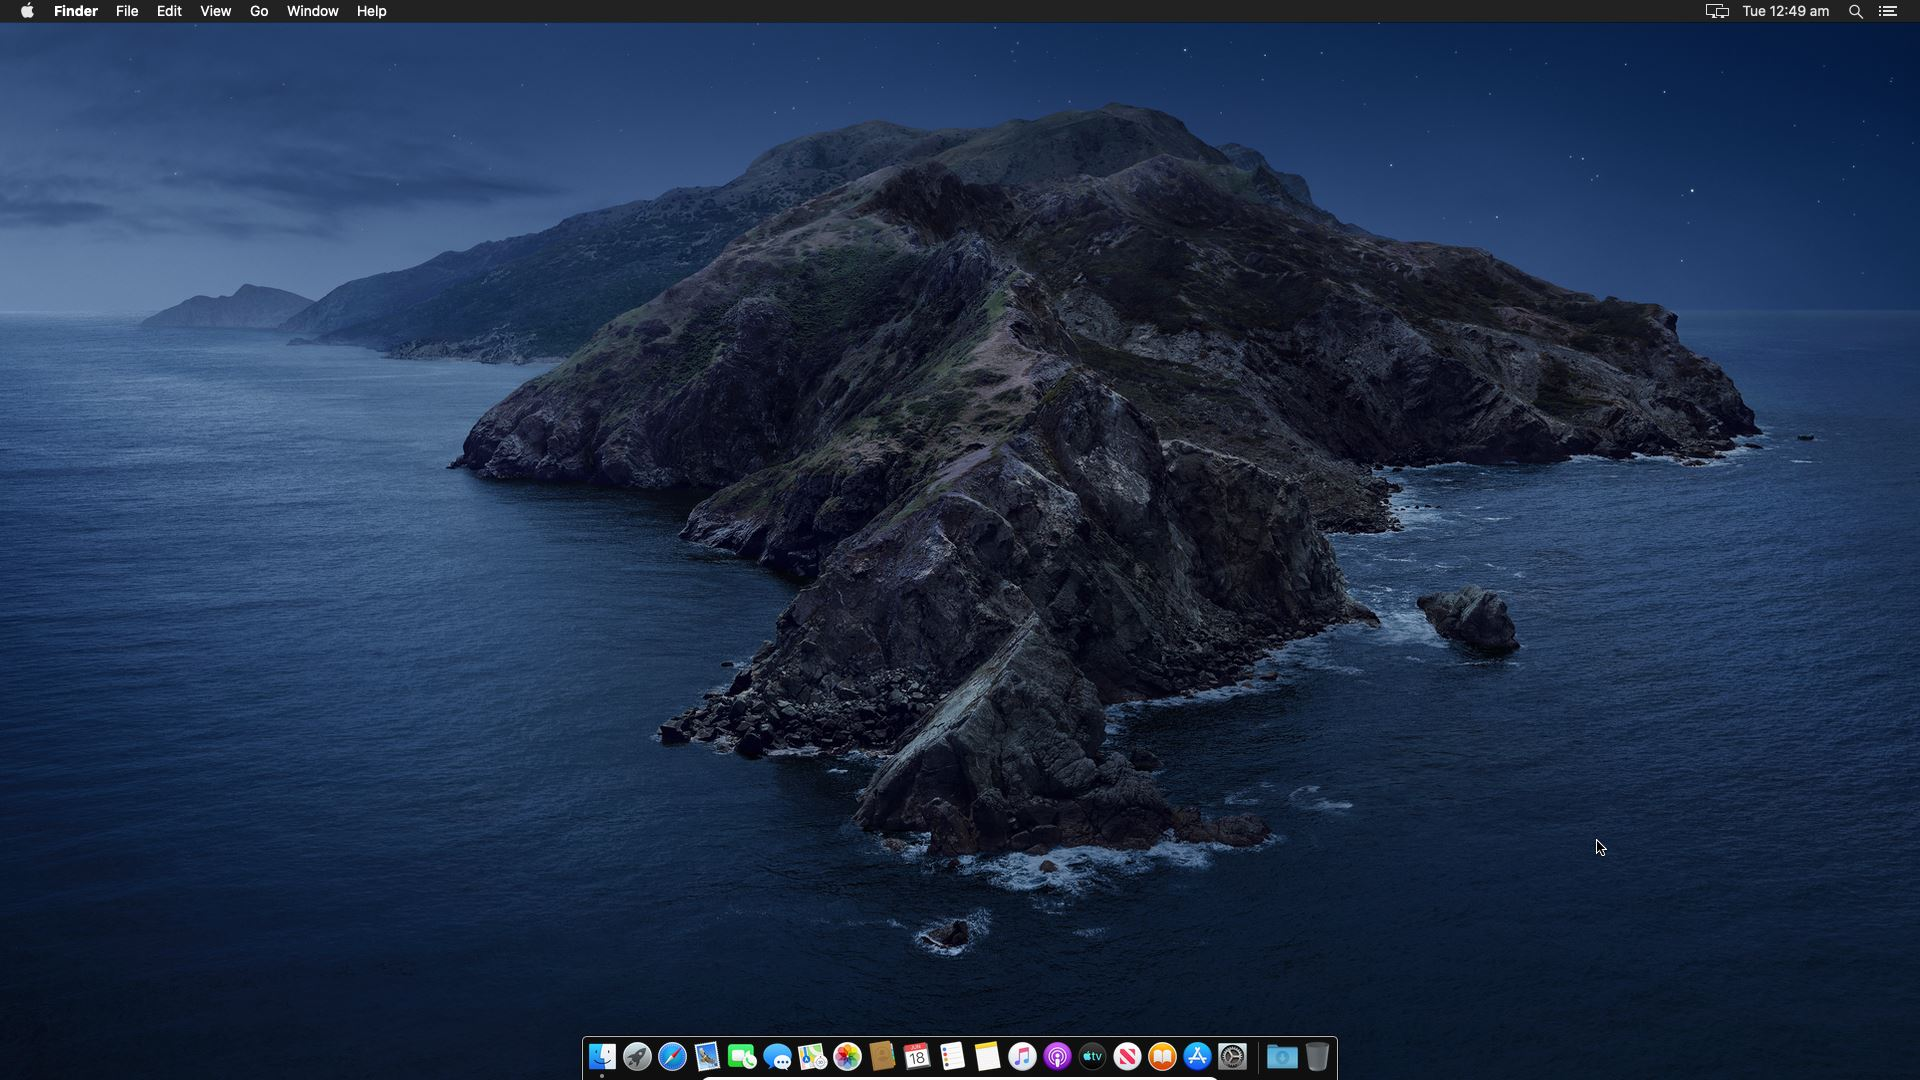 macOS Catalina Screen Resolution Changed